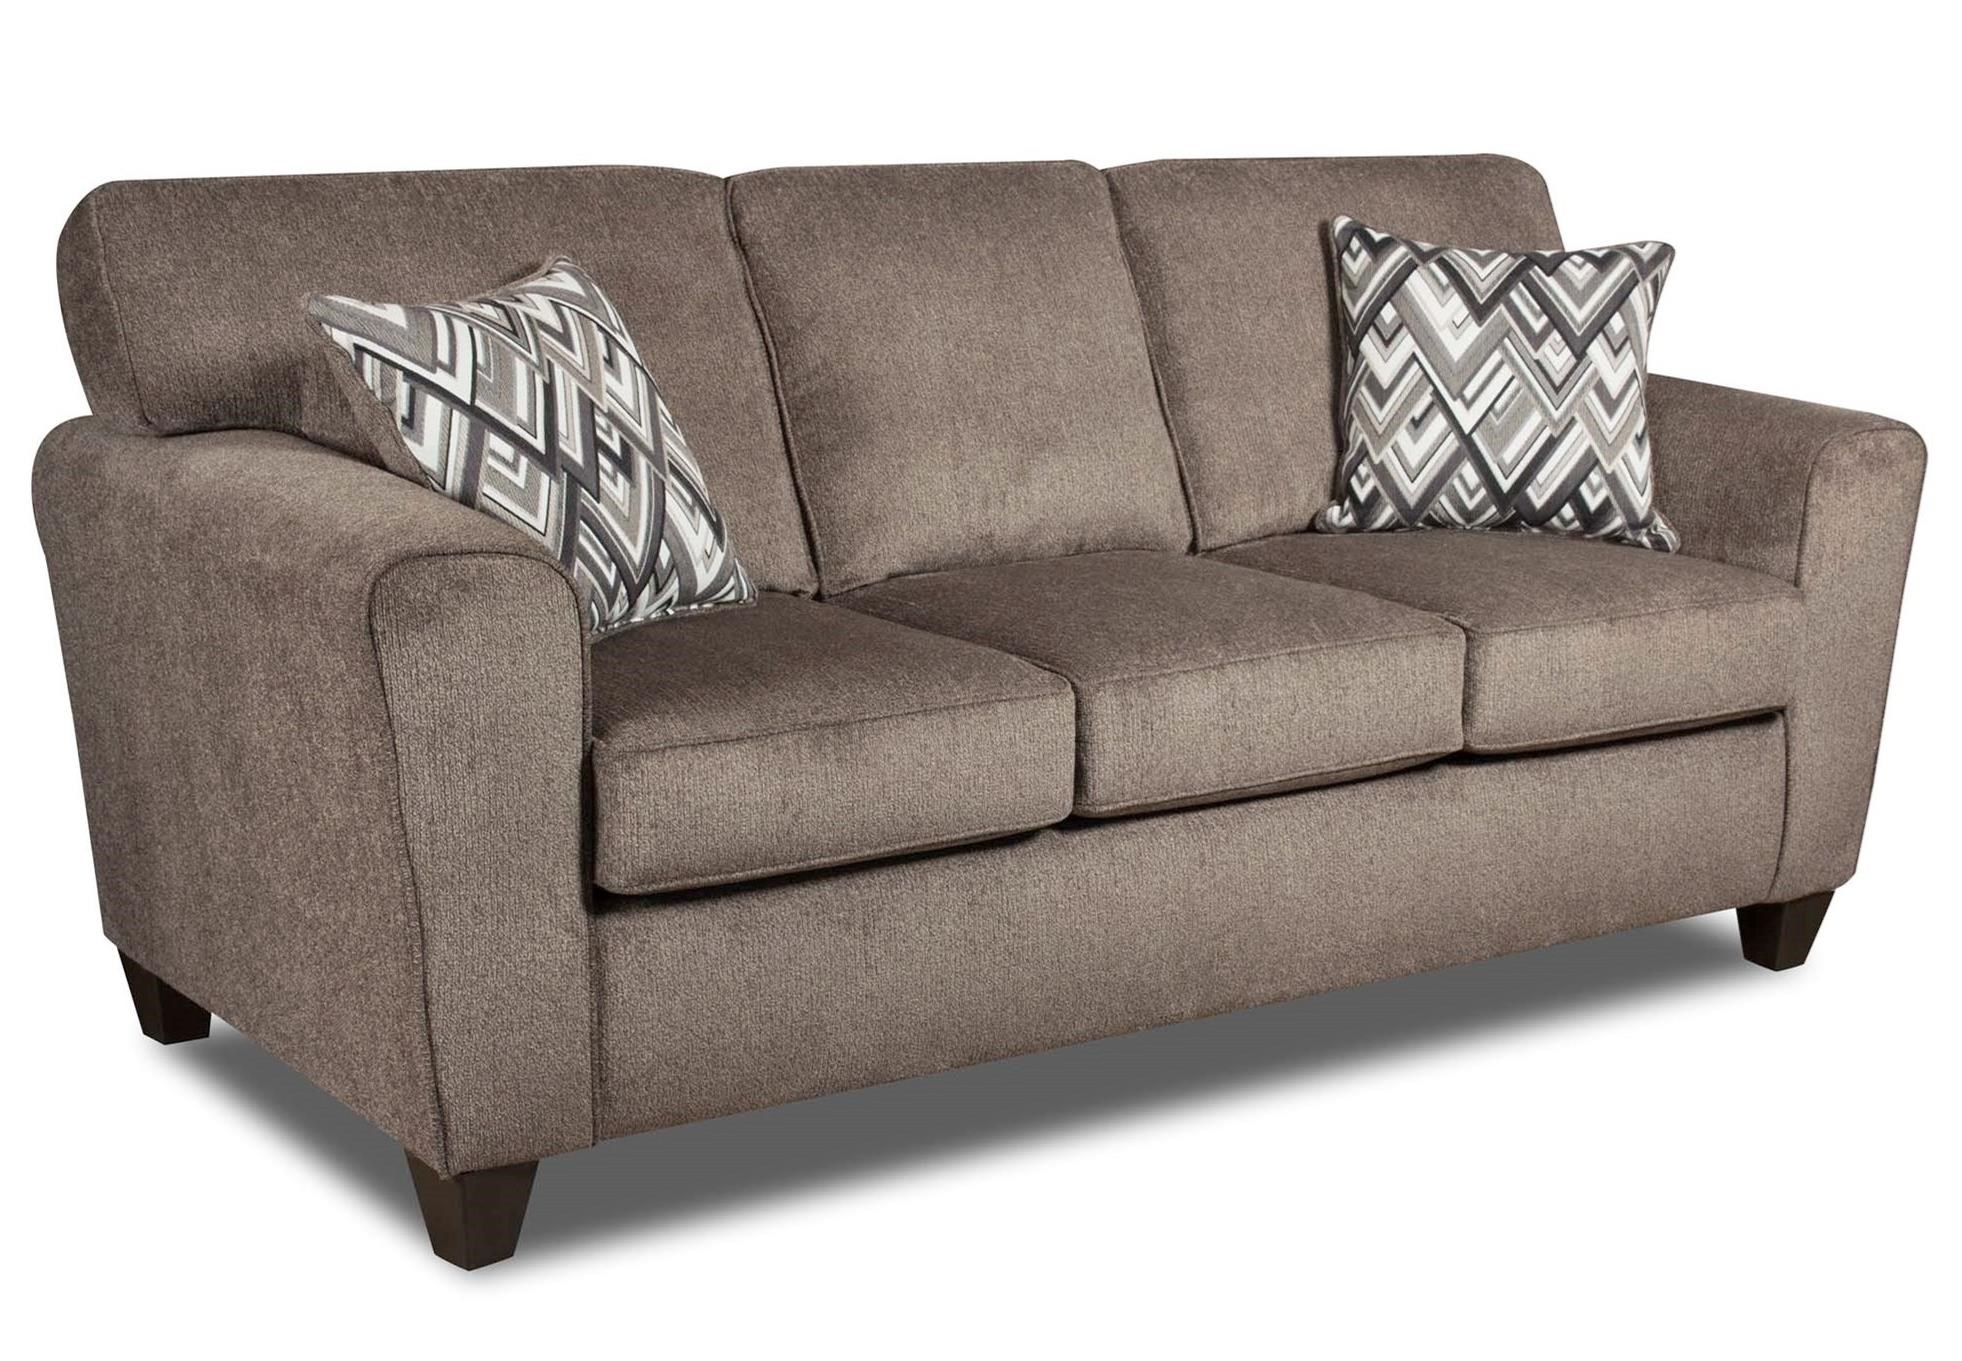 Sofa with Casual Style